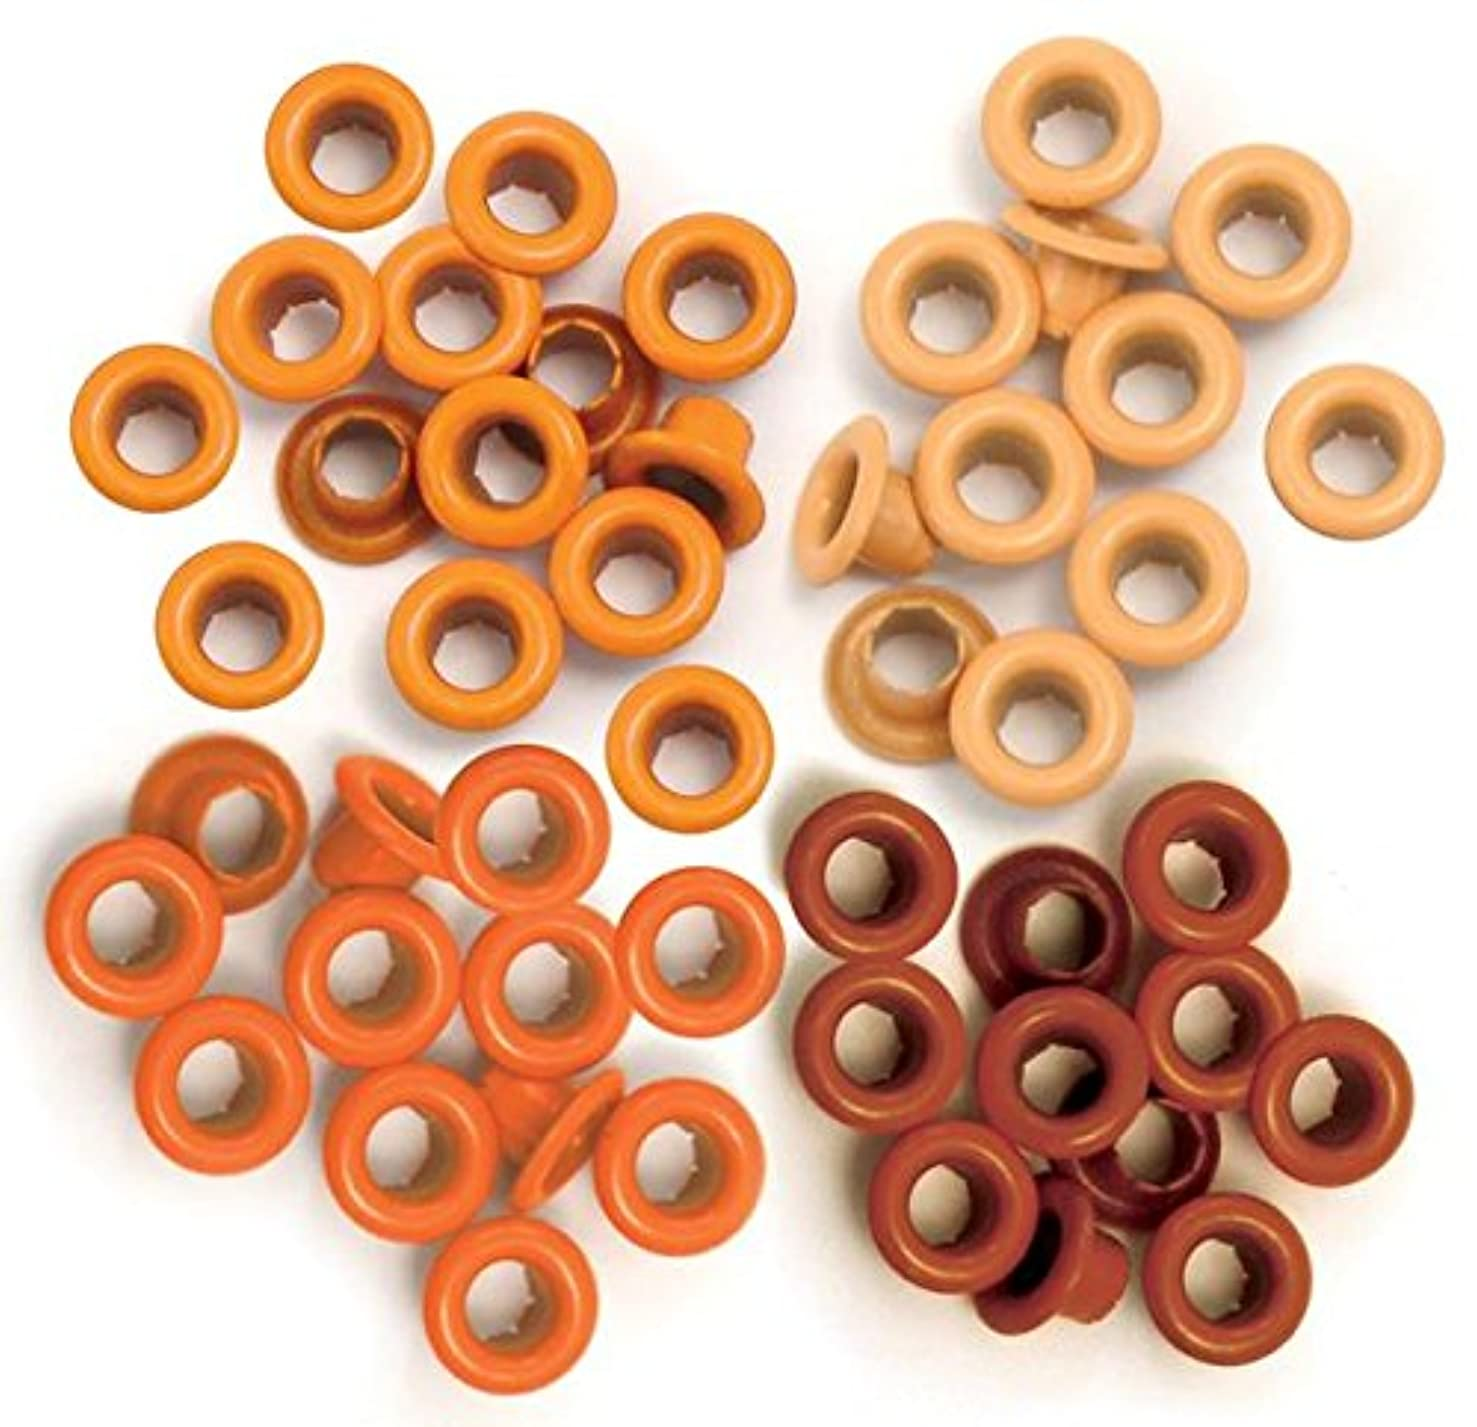 We R Memory Keepers 41574-9 Eyelets for Scrapbooking, Standard, Orange